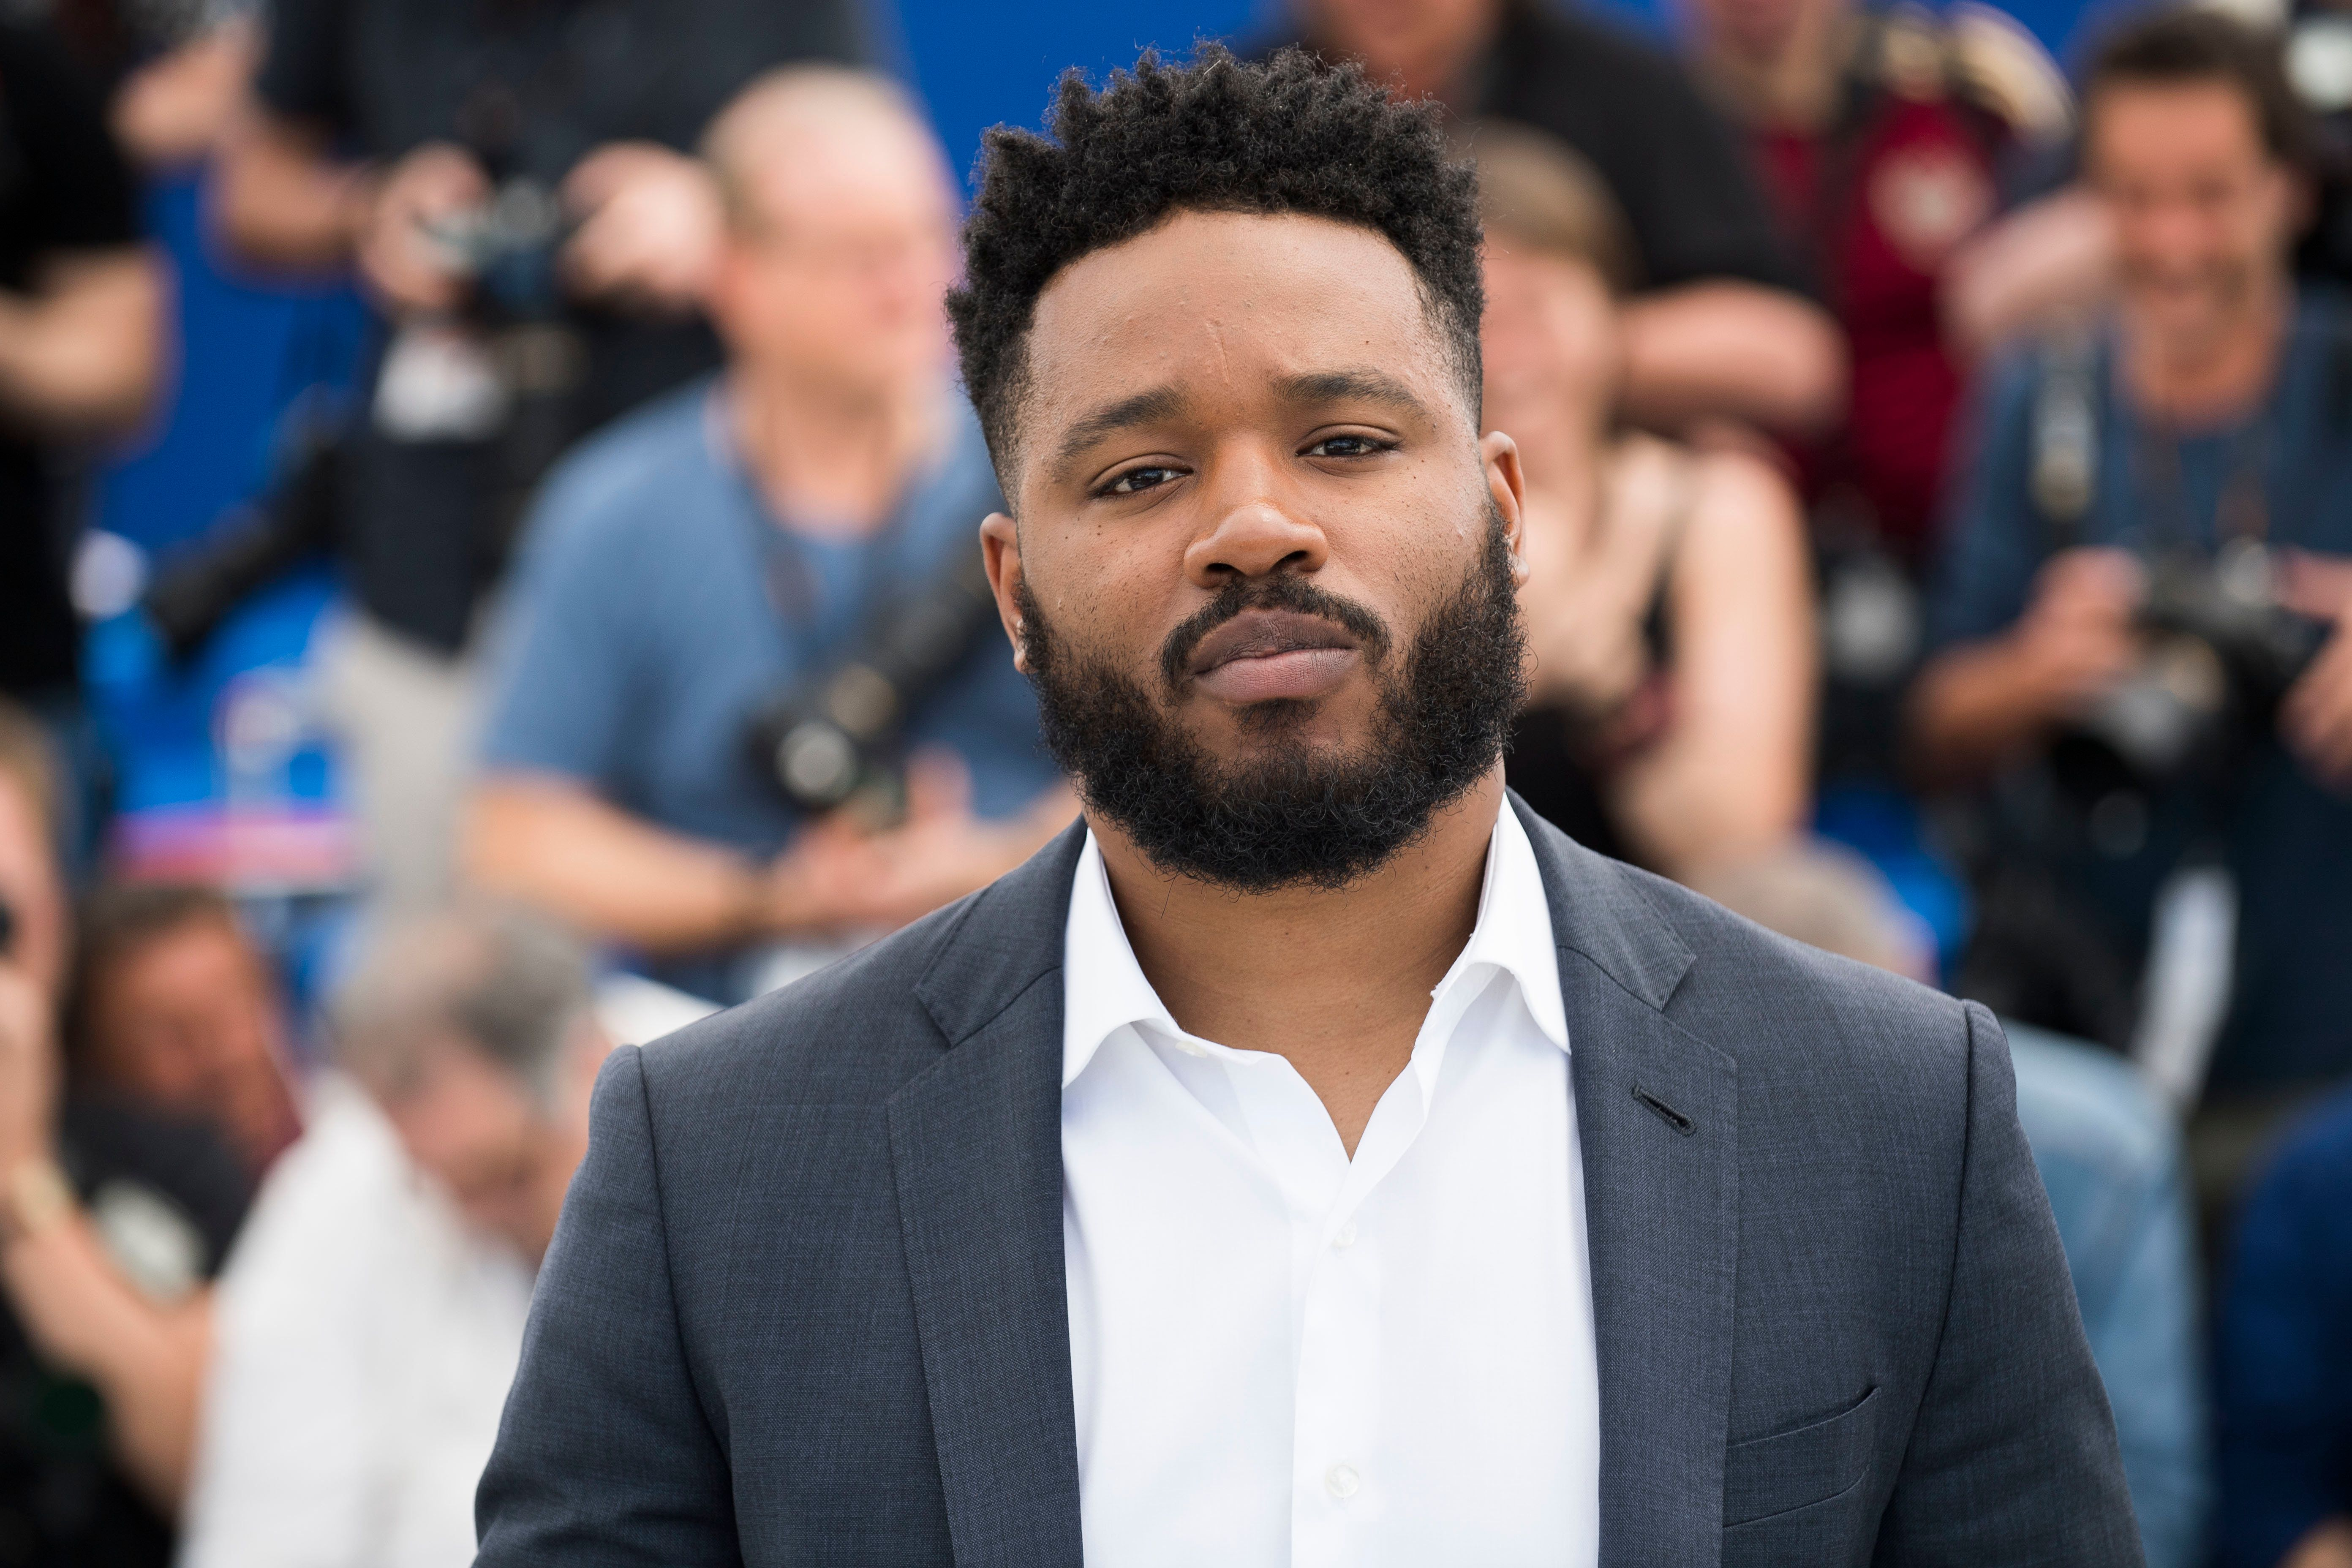 """Black Panther"" director Ryan Coogler at the Cannes Film Festival in May 2018."